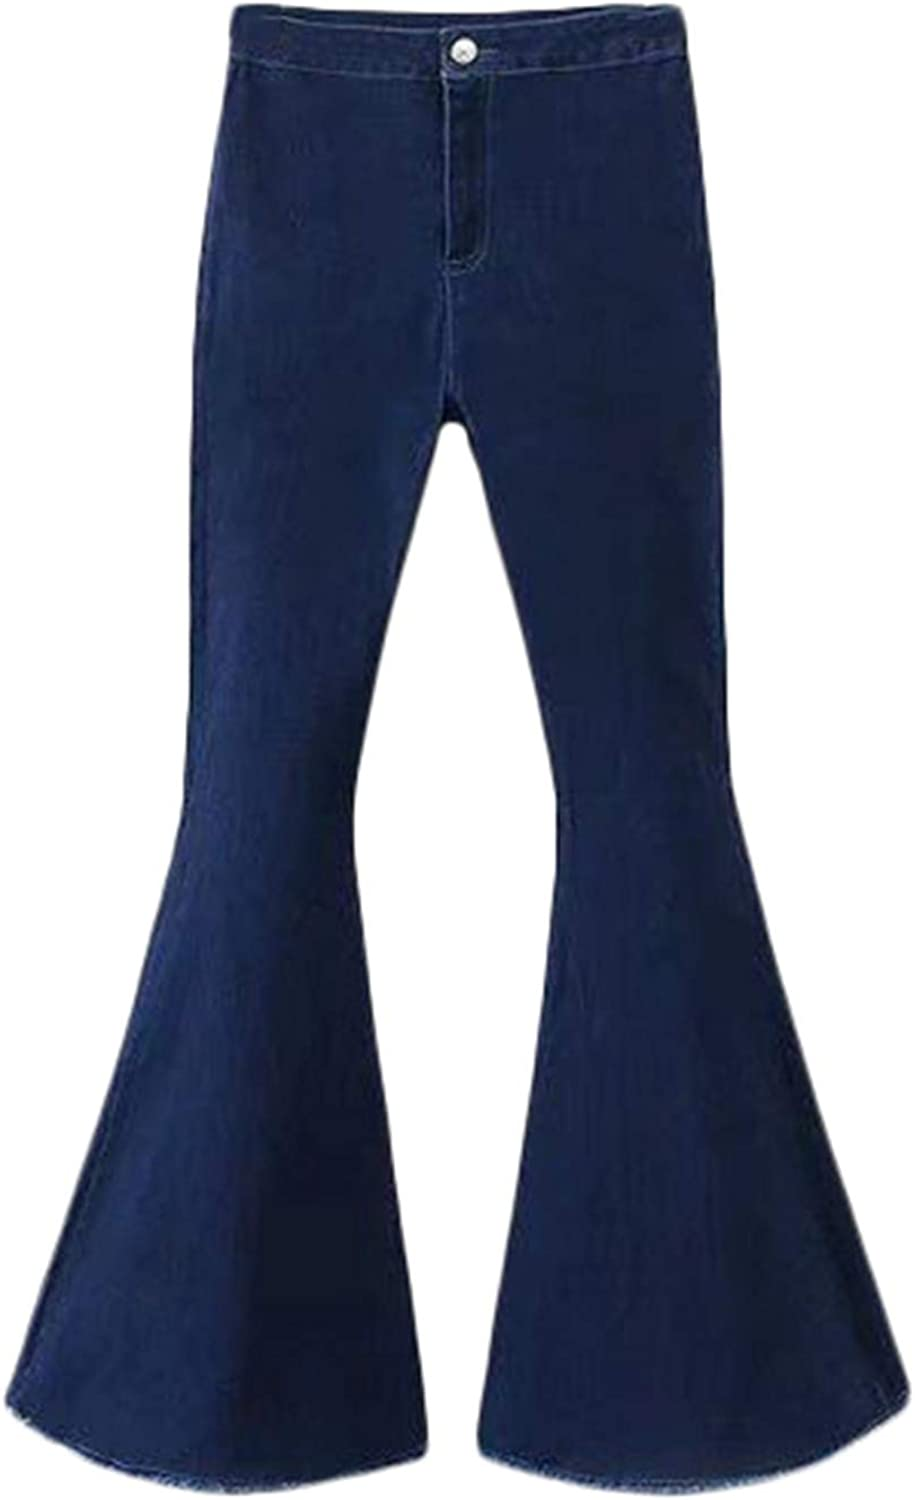 Andongnywell Women's Pure Color Slim Lad Bottom Ultra-Cheap New Shipping Free Shipping Deals Bell Pants Denim